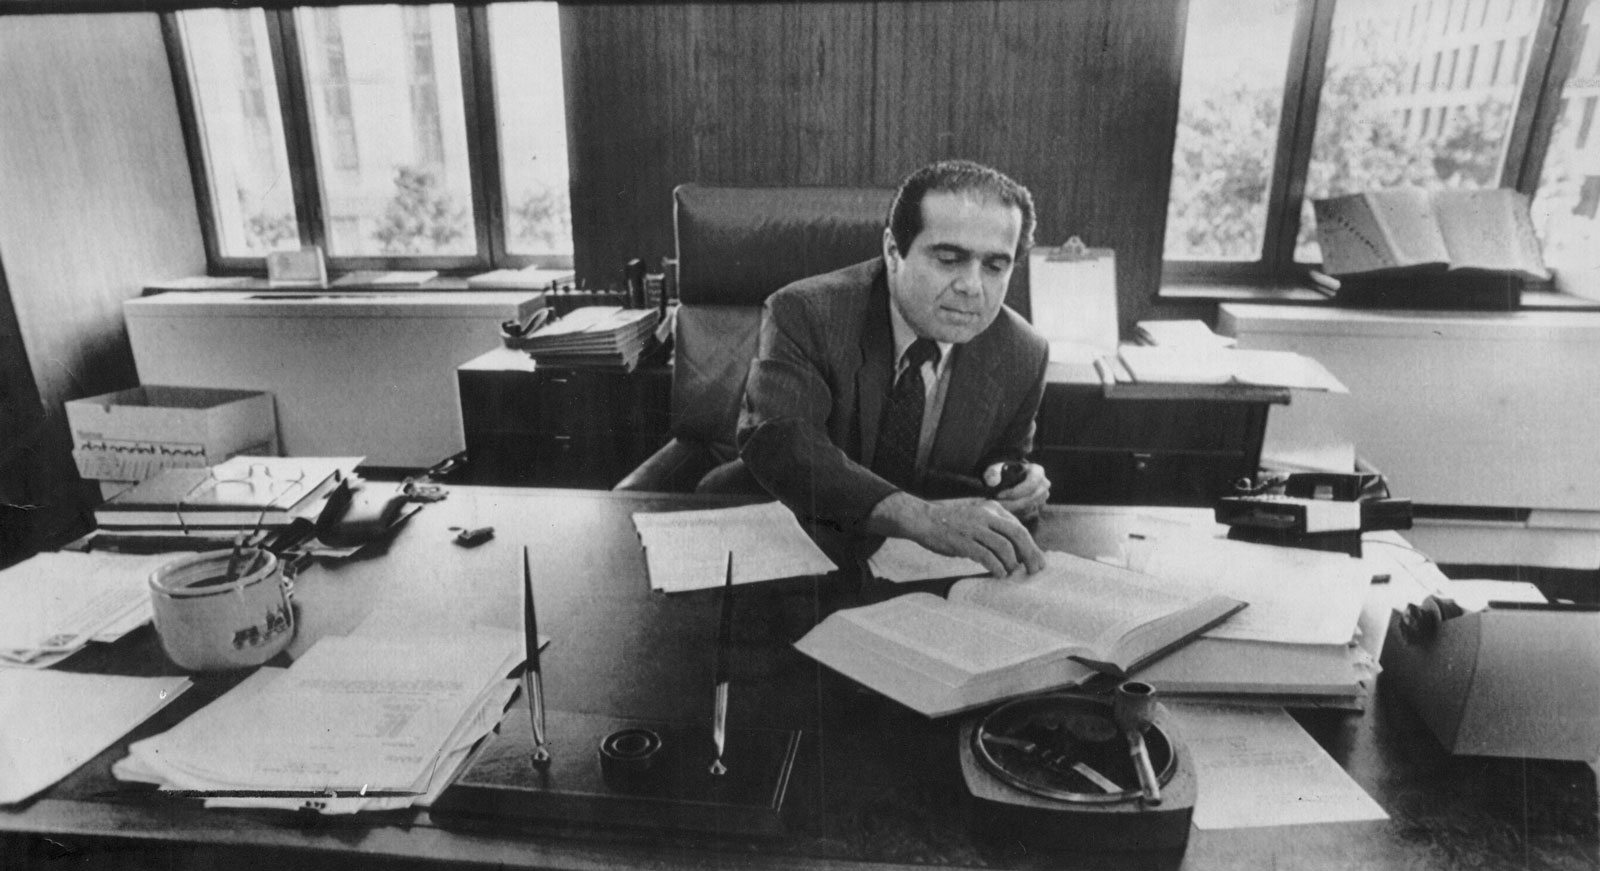 Judge Antonin Scalia, then serving on the United States Court of Appeals in the District of Columbia Circuit, Washington, D.C., July 28, 1986